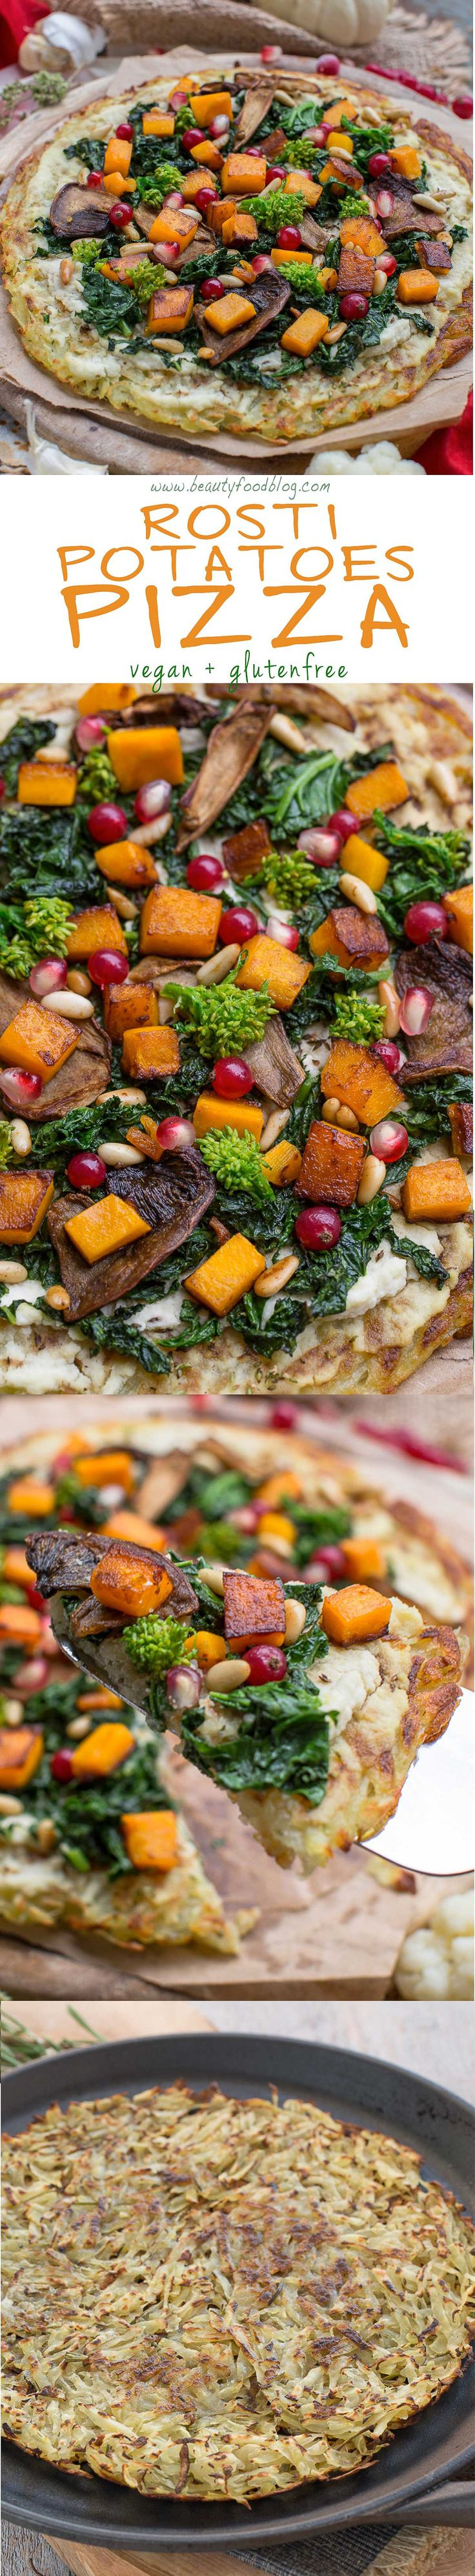 AMAZING #vegan #glutenfree ROSTI POTATOES PIZZA with kale, pumpkin, mushrooms and pomegranate #simple | Ricetta pizza Rosti di patate senza glutine vegan con kale, zucca, funghi e melagrana